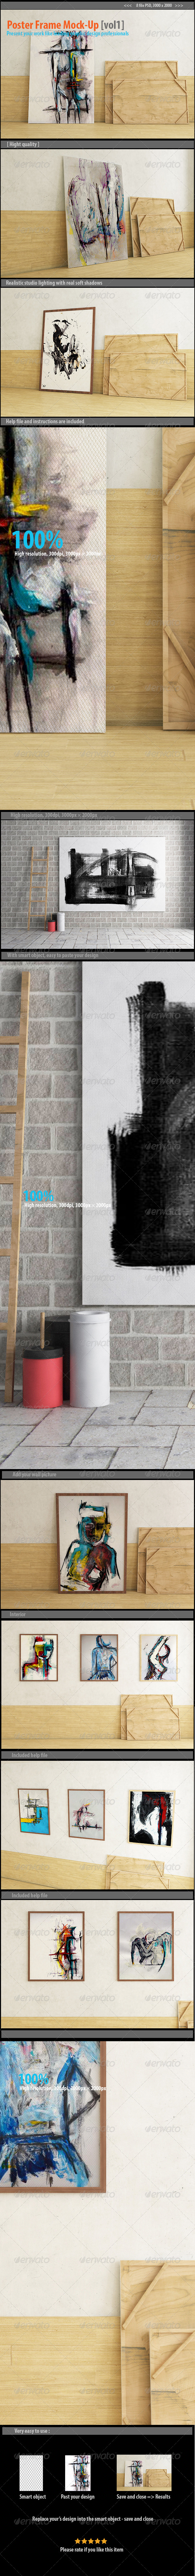 GraphicRiver Poster Frame Mock-Up [vol1] 8150982